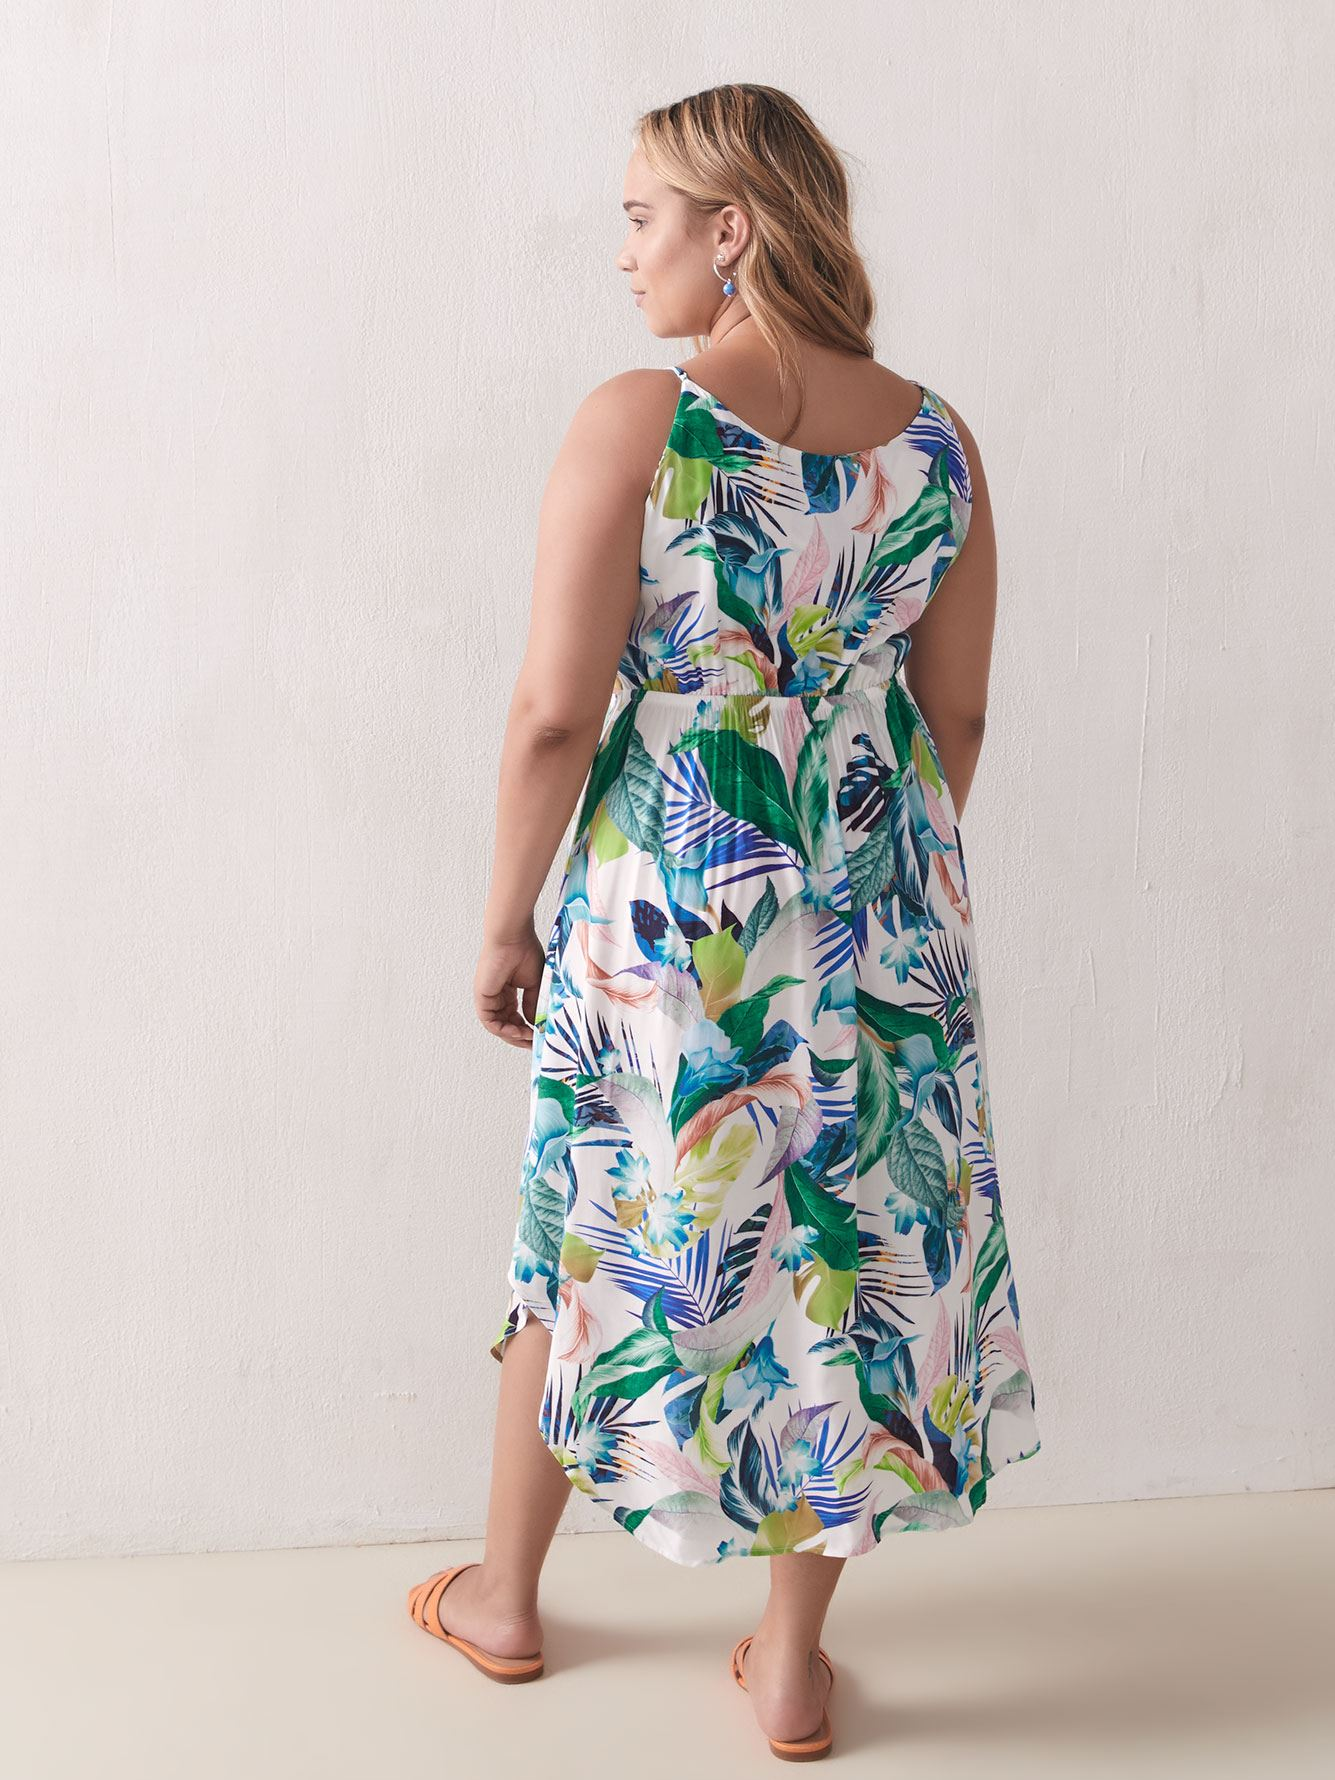 In The Moment Beach Cover-Up Dress - La Blanca